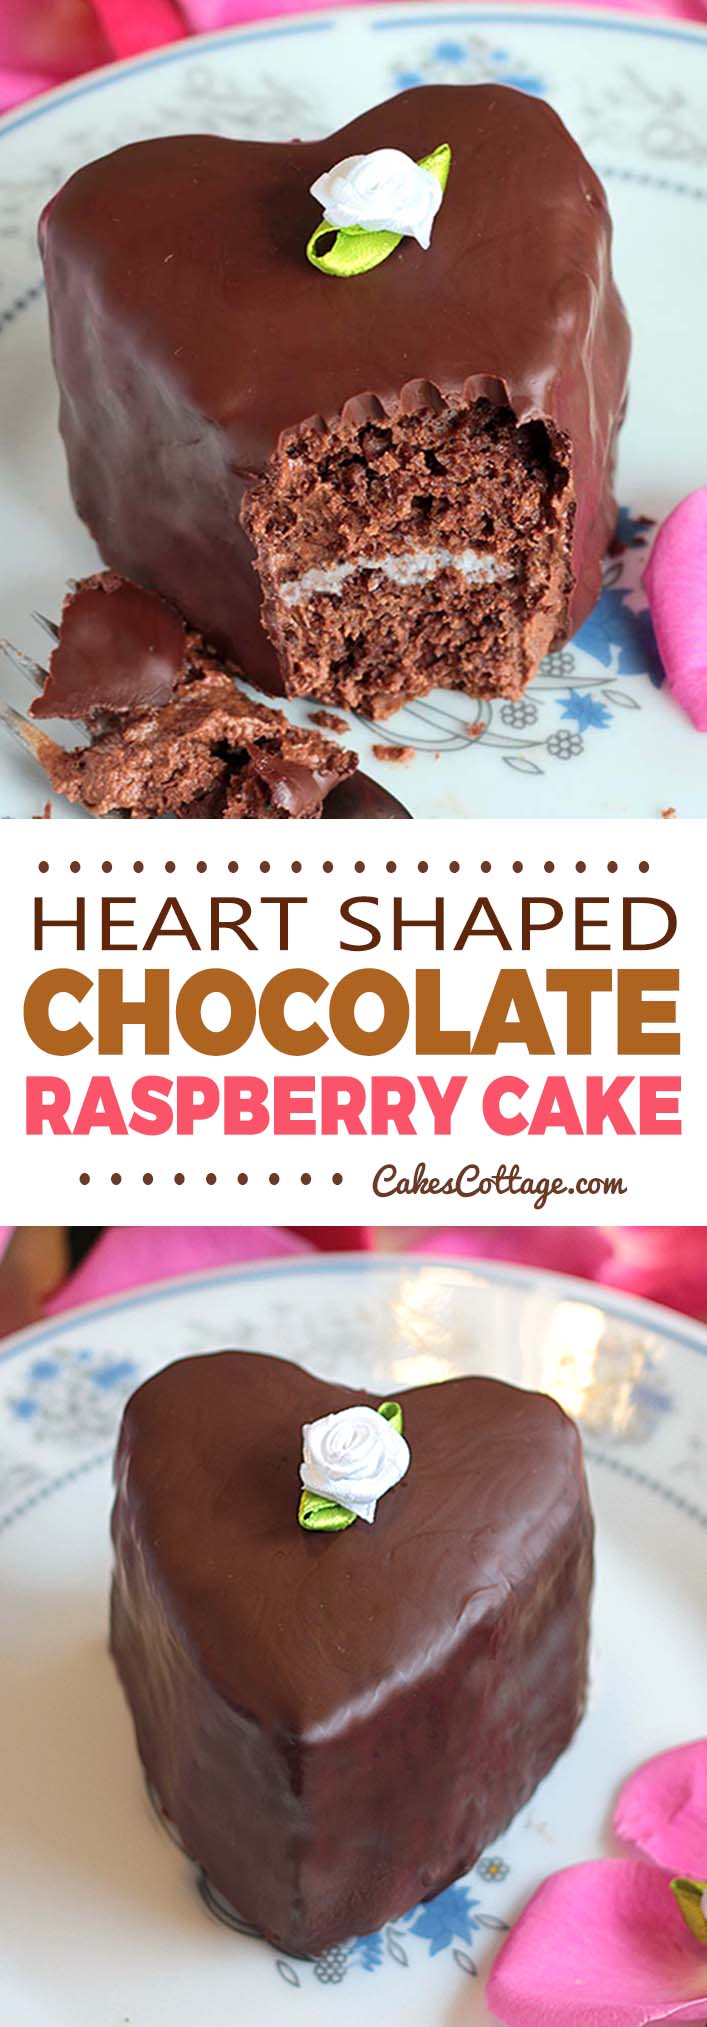 Heart Shaped Chocolate Cakes with a tender raspberry cream are the perfect dessert for Valentine's Day or date night! #chocolate #valentine #raspberry